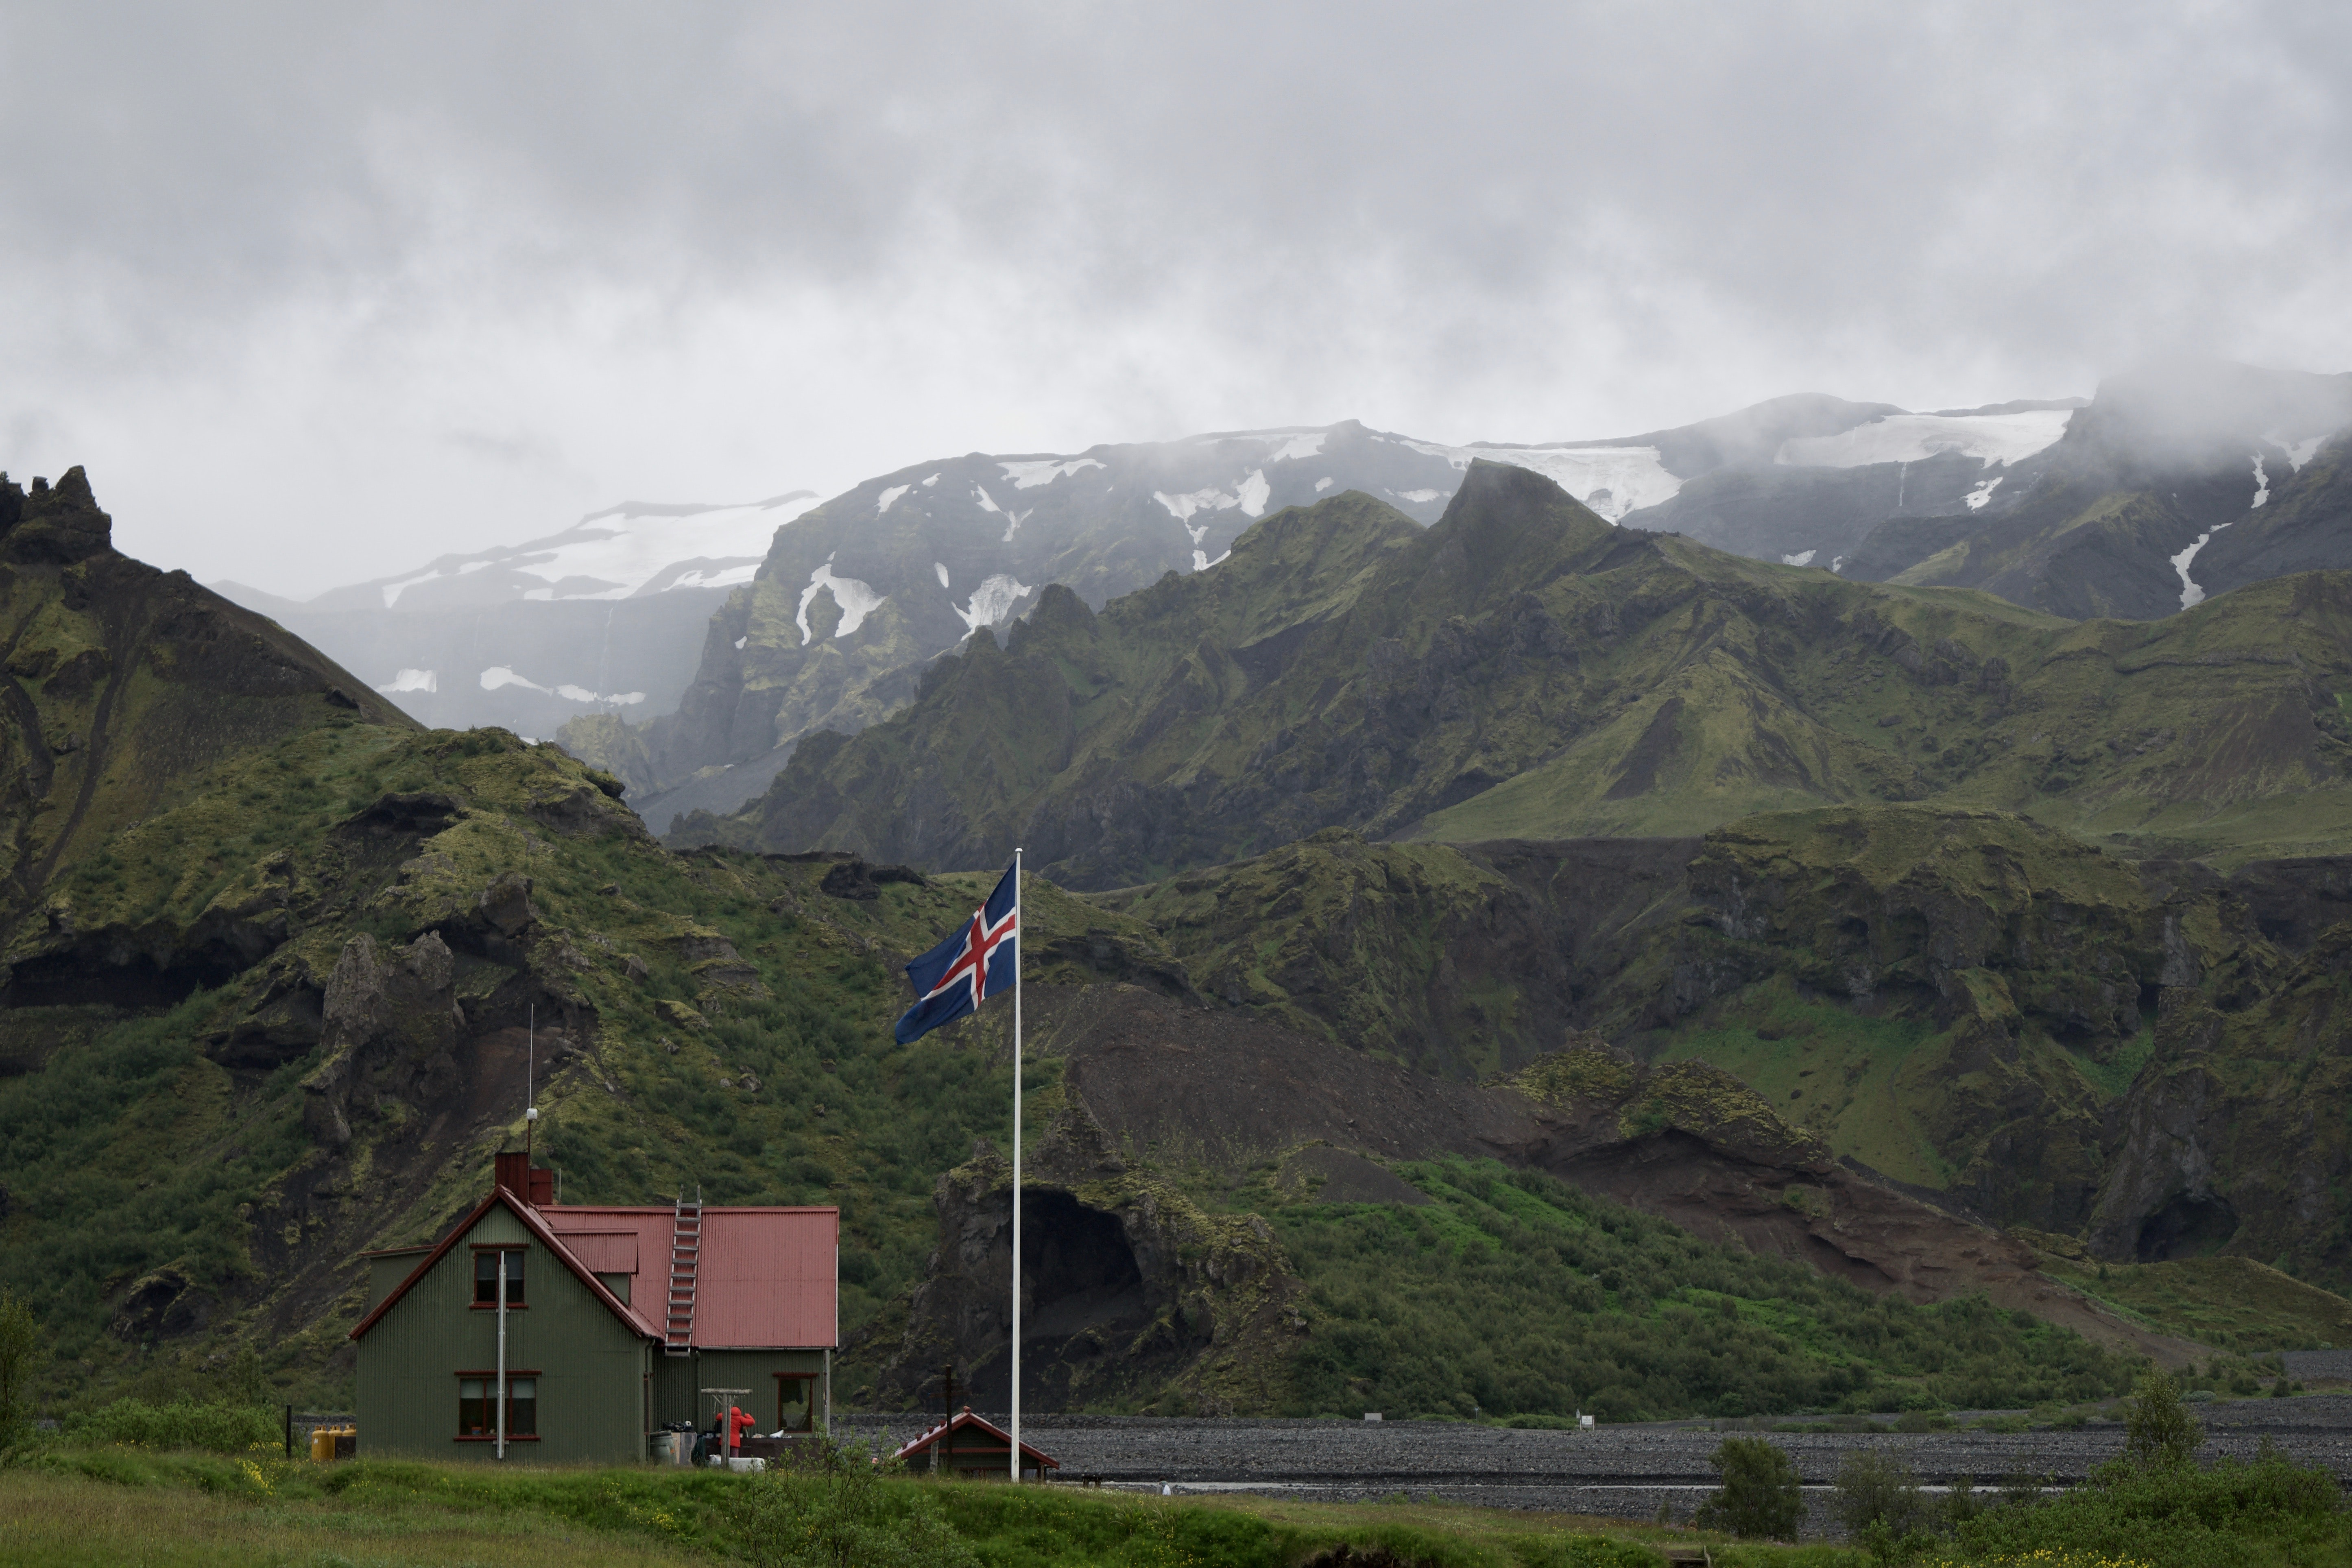 white concrete house with white, blue, and red cross flag near mountain range covered in green vegetation at daytime